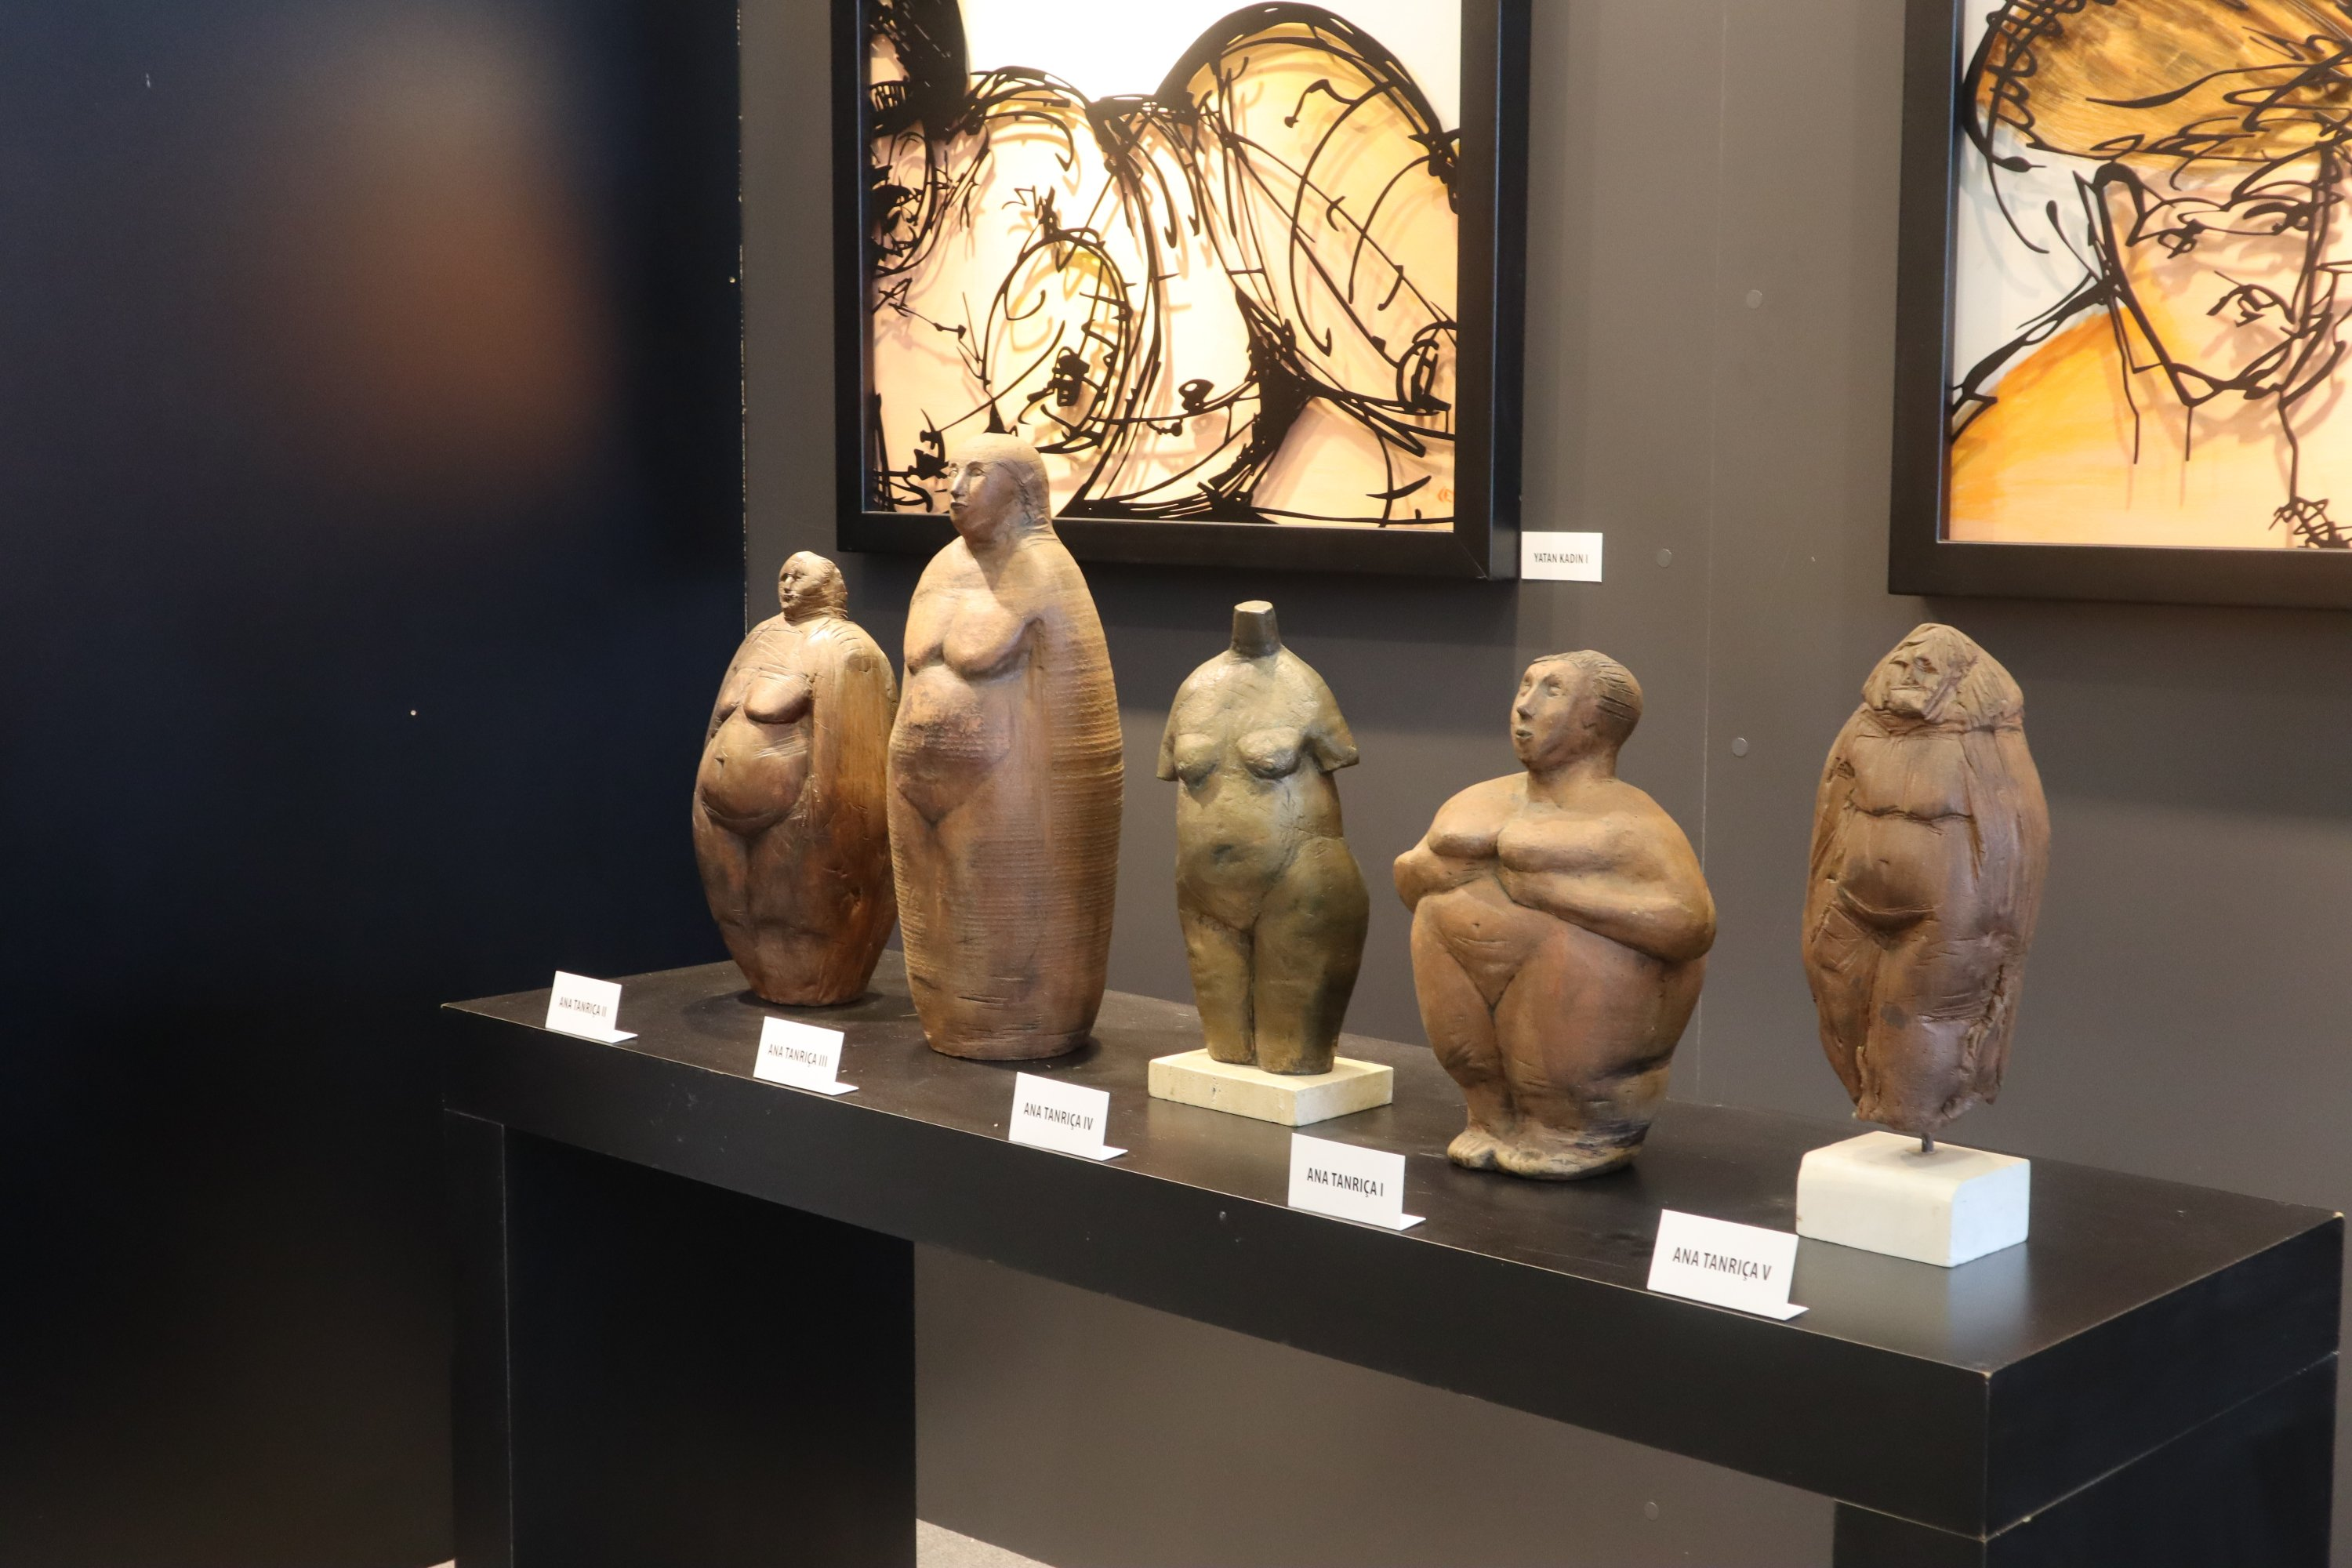 Various sculptures of mother goddesses by artist Cem Sağbil are seen in this photo at the contemporary art fair ARTANKARA, Ankara, Turkey, March 30, 2021 (Photo by Dilara Aslan)